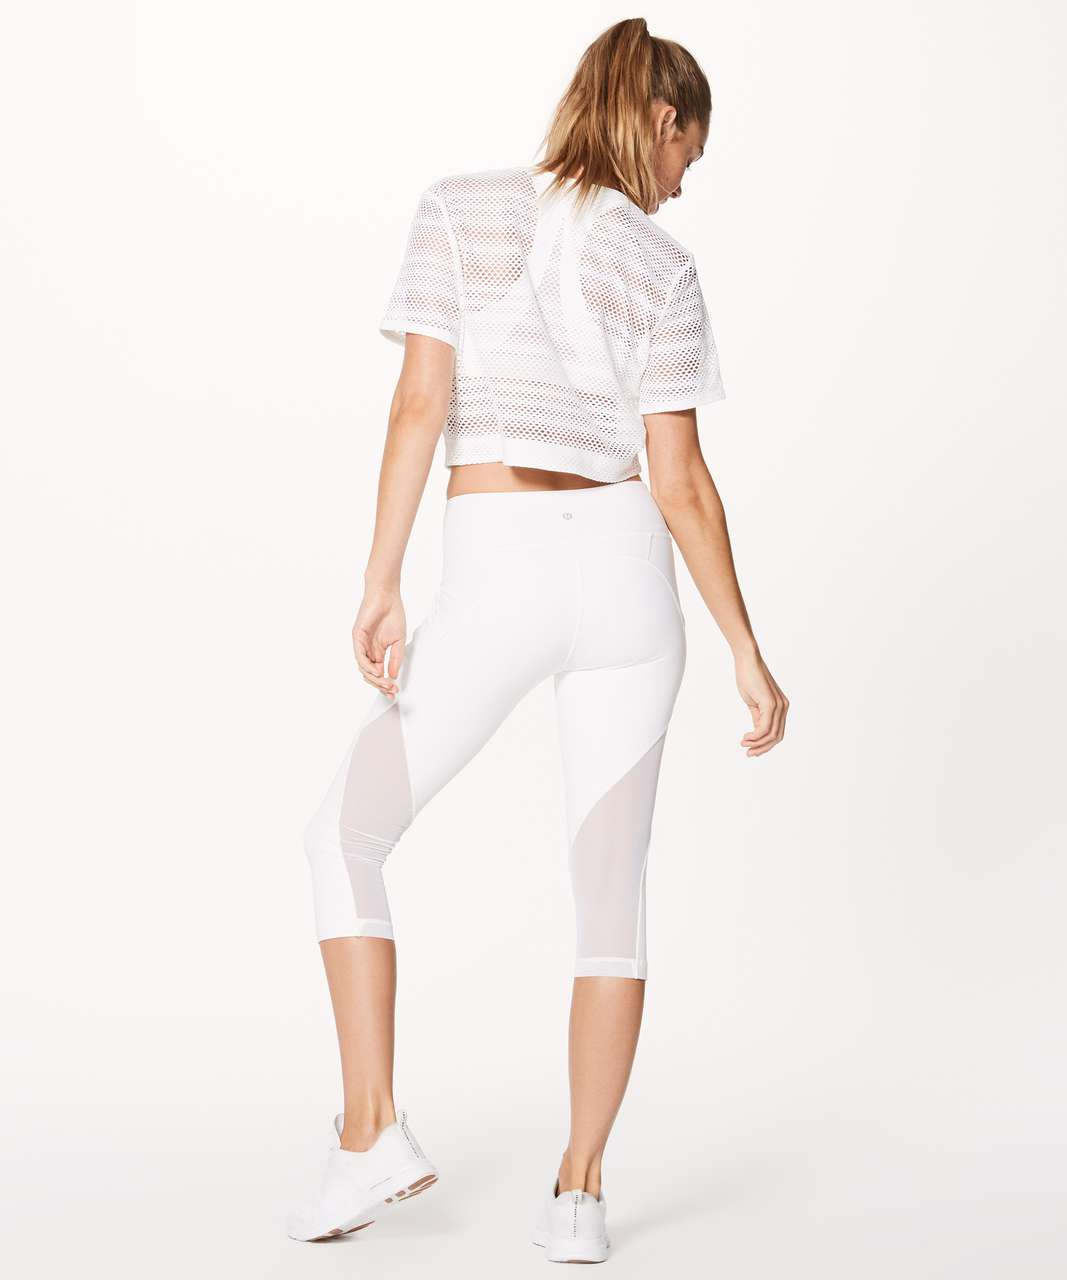 59933c915e1b3 Lululemon Sweat Your Heart Out Short Sleeve - White (First Release ...